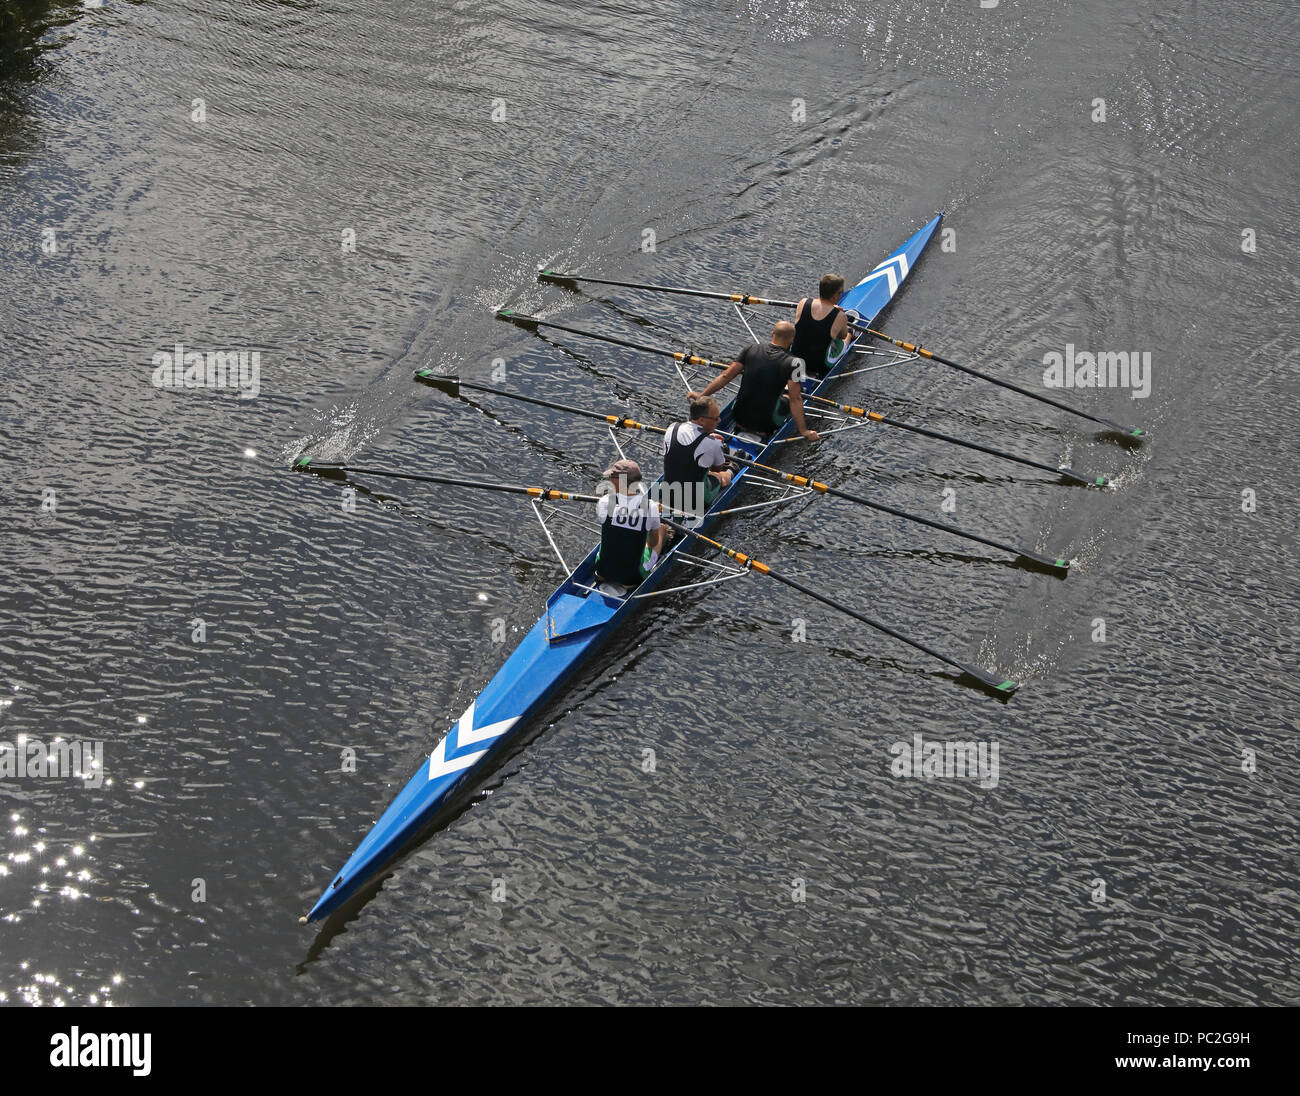 Trafford Rowing Club mens coxless quads, at Warrington Rowing Club 2018 Summer regatta, Howley lane, Mersey River, Cheshire, North West England, UK - Stock Image